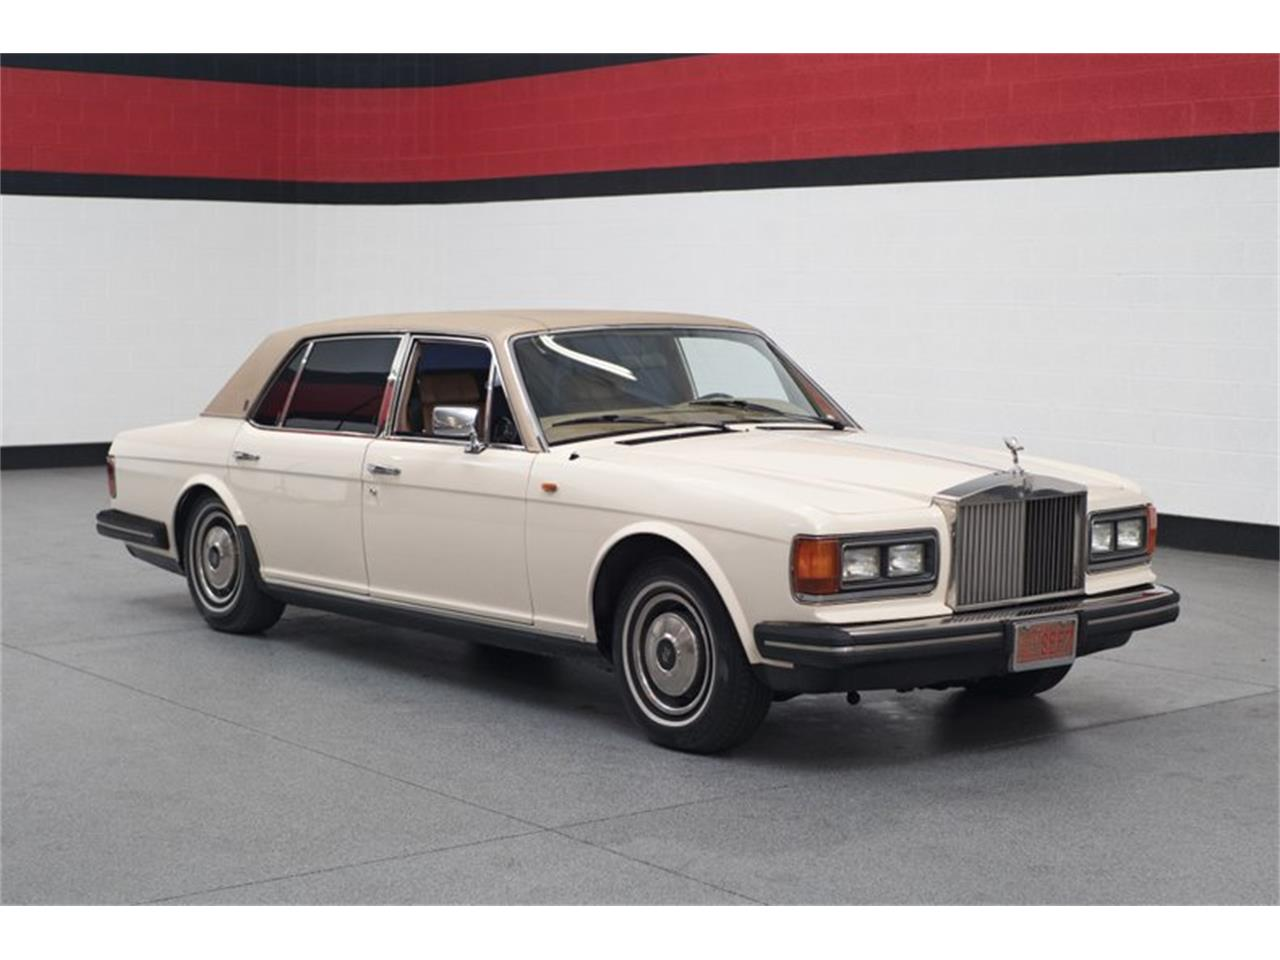 Large Picture of '83 Rolls-Royce Silver Spur located in Arizona - $12,000.00 Offered by B5 Motors - PXWA